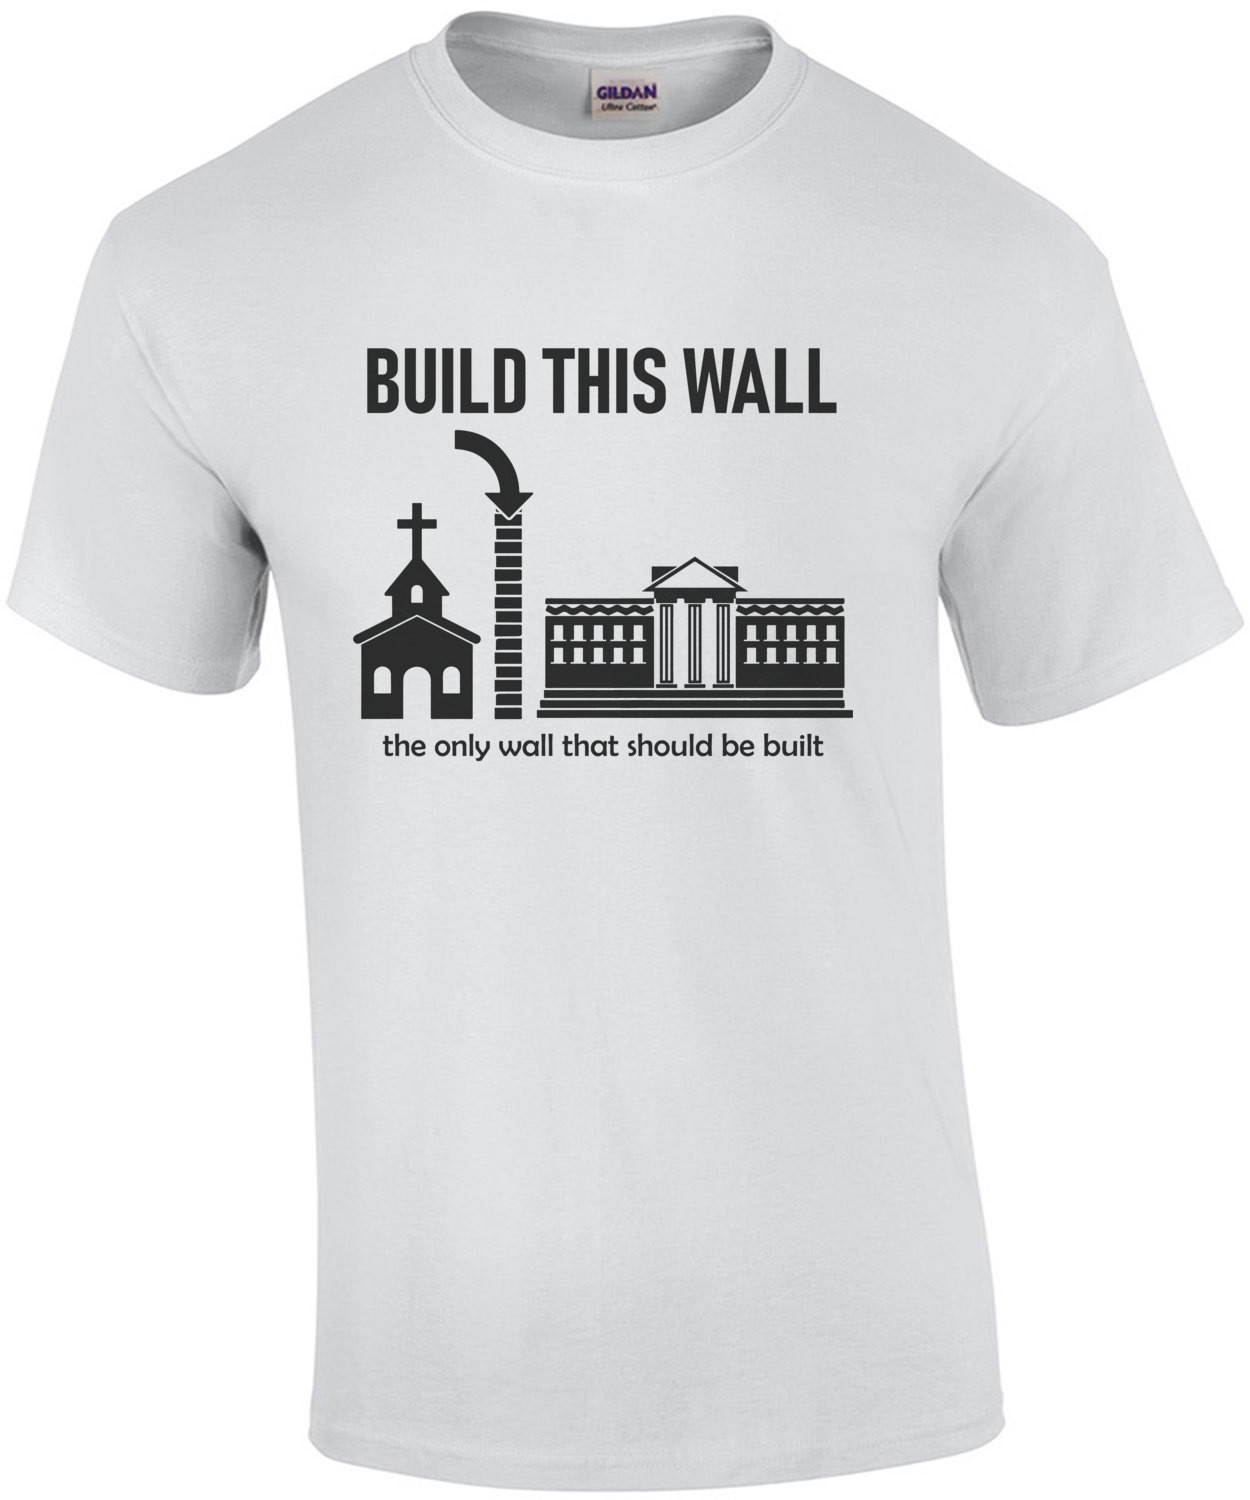 Build this wall - the only wall that should be built. Political T-Shirt